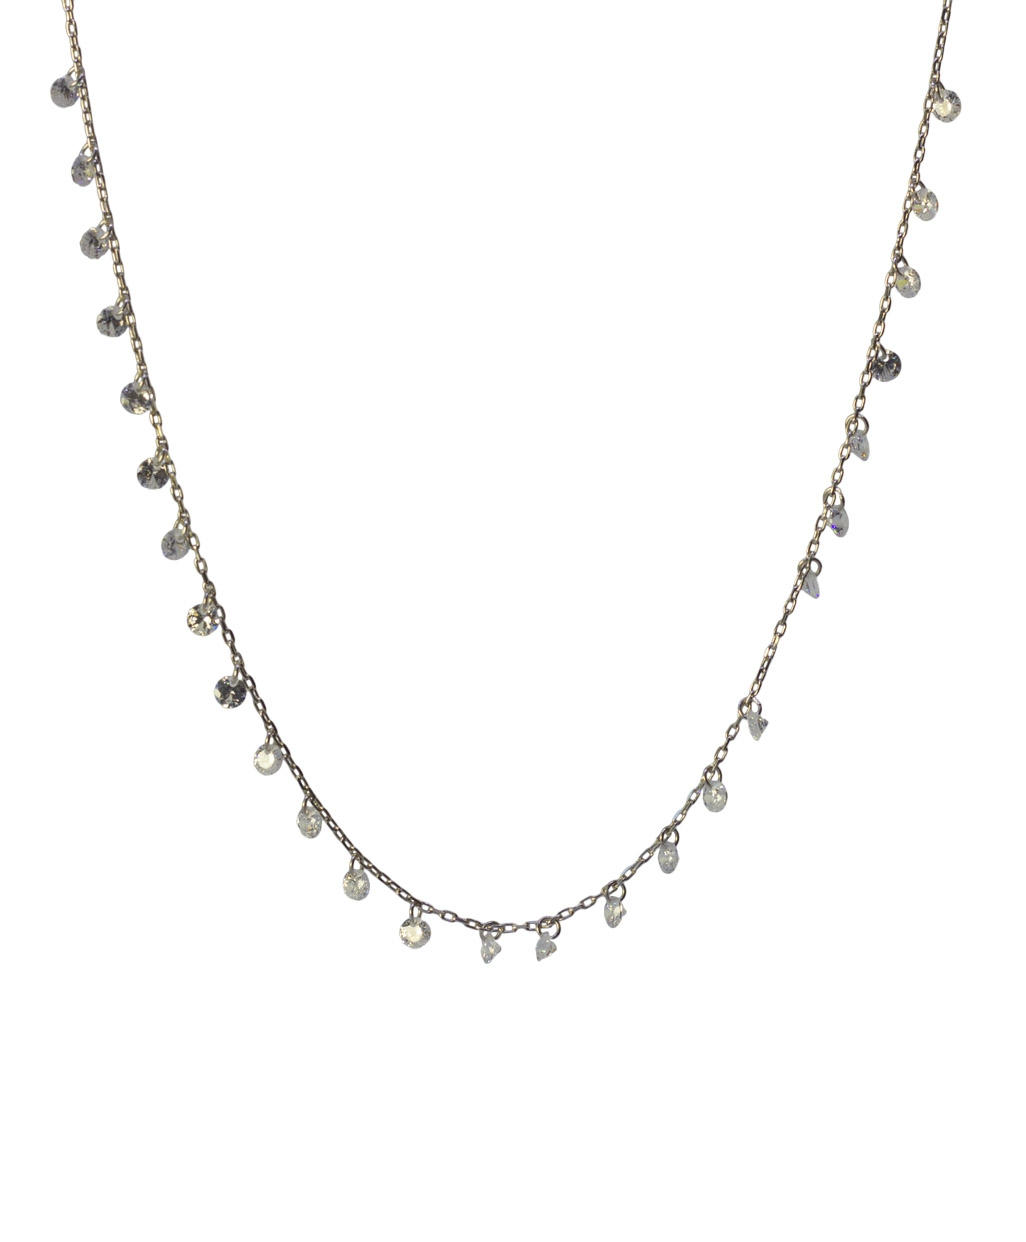 White Zircon Silver Necklace